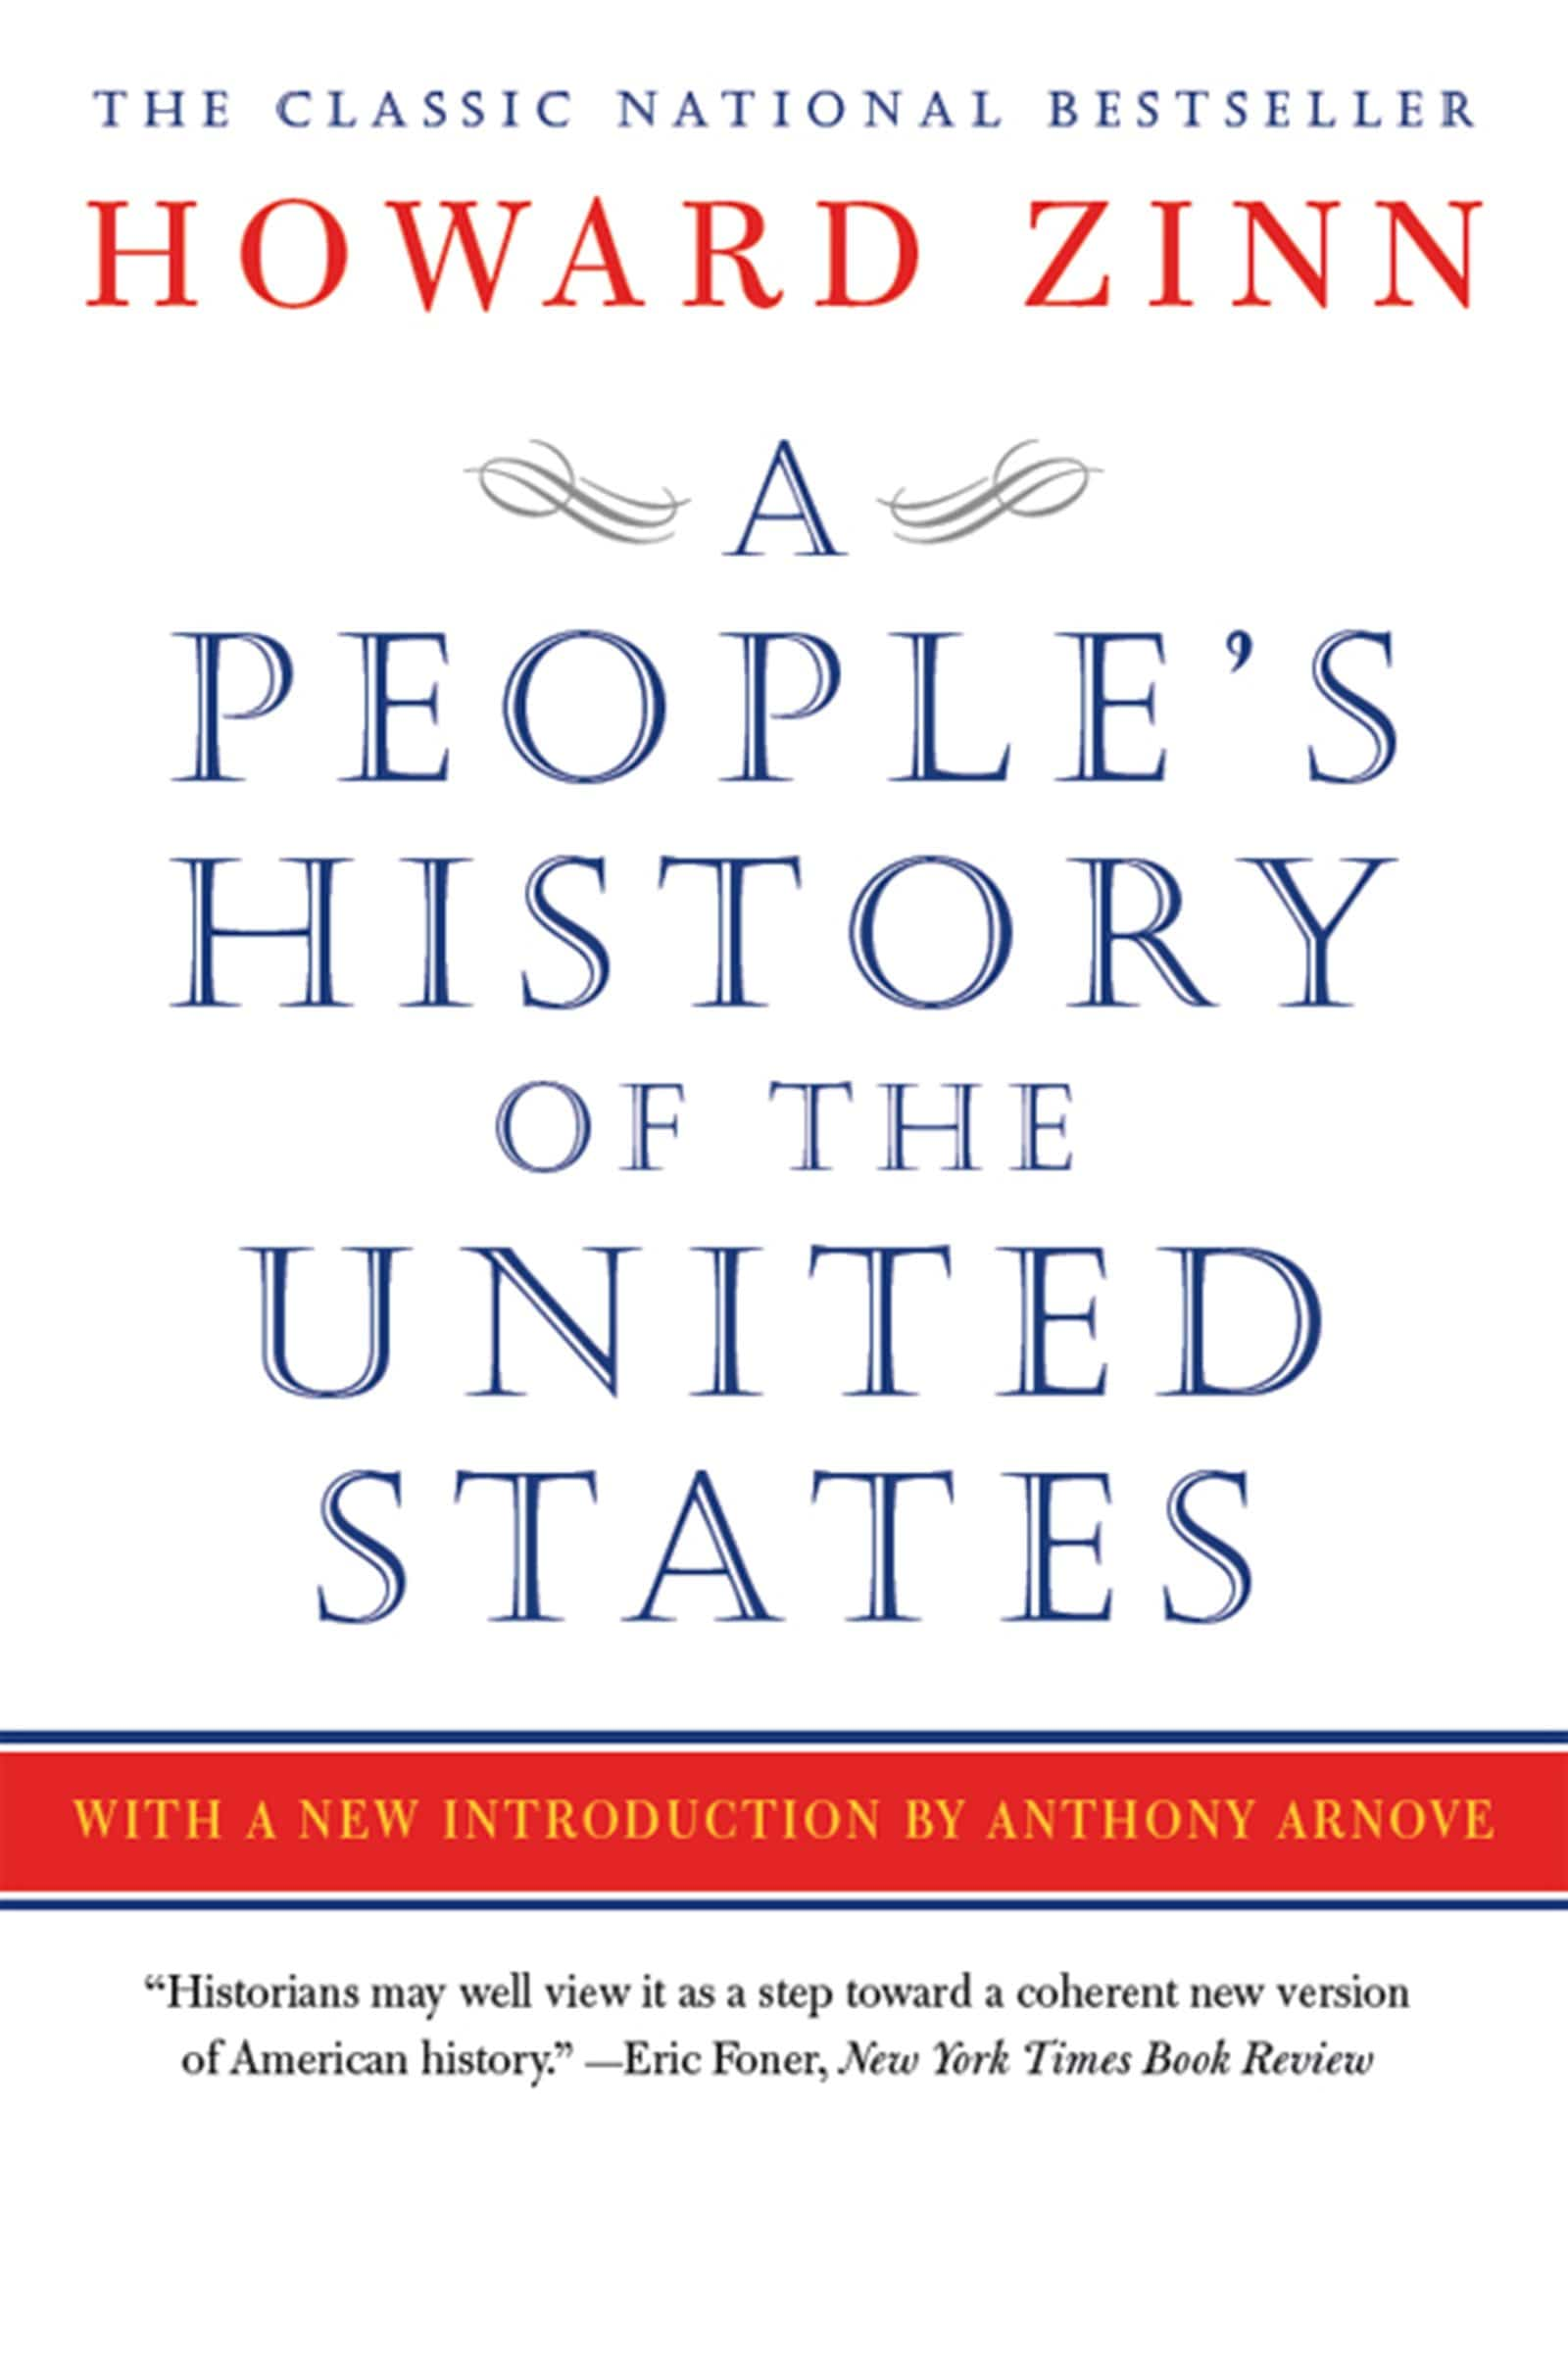 The cover of A People's History of the United States